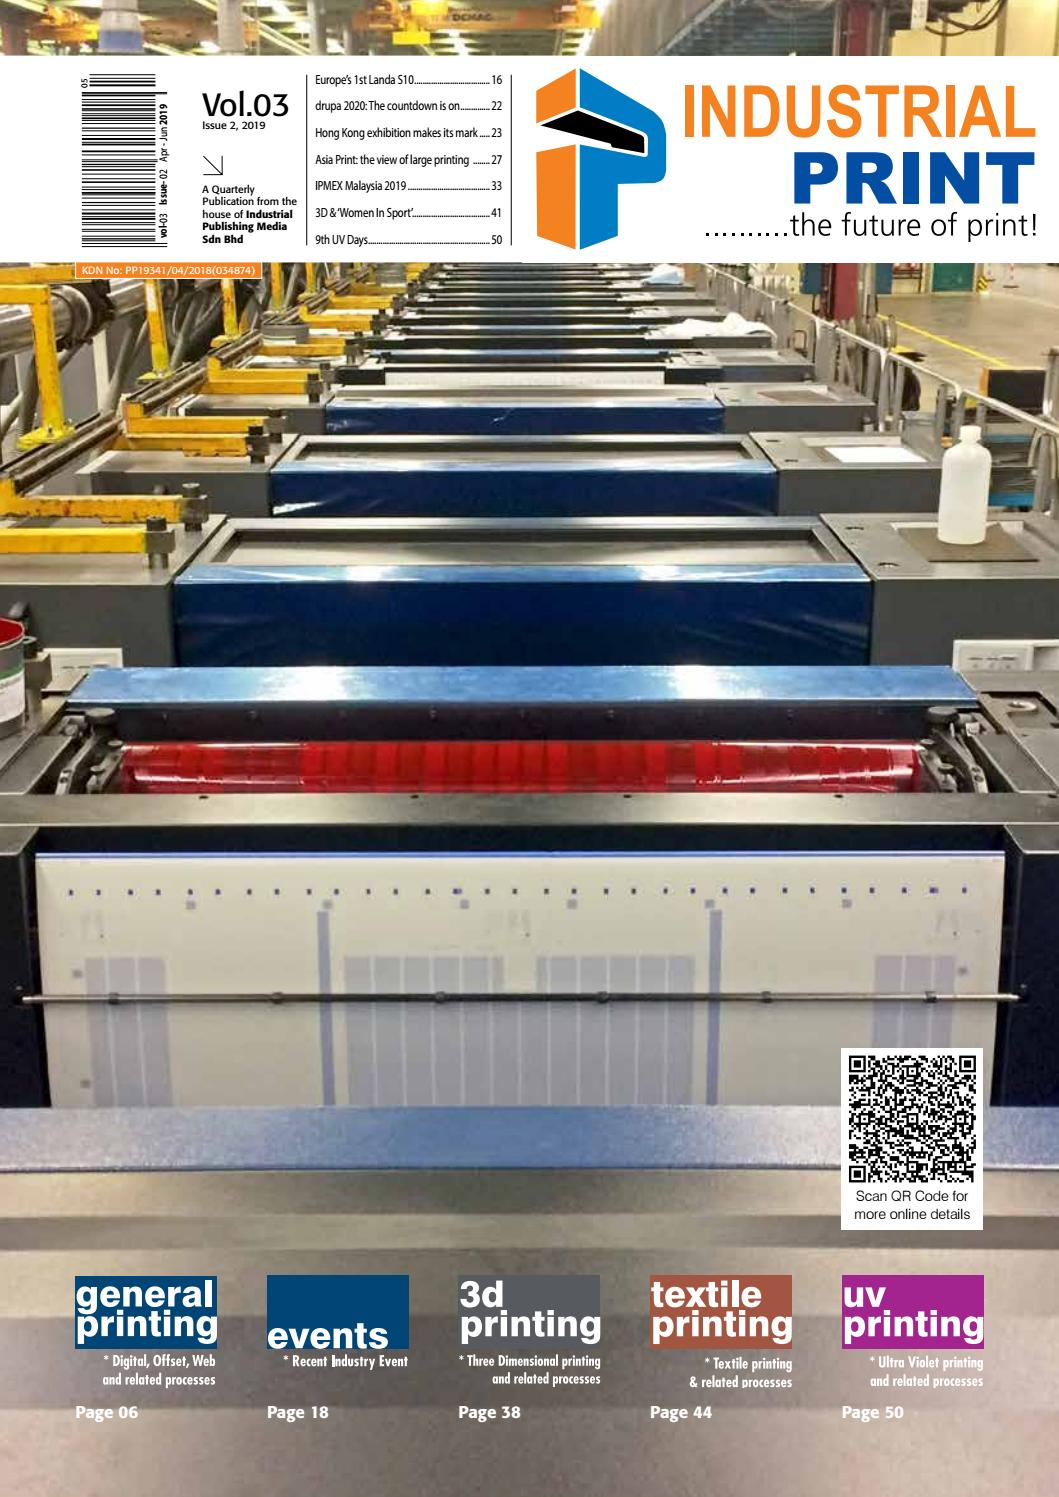 Industrial Print Magazine Apr-Jun 2019 issue by Industrial